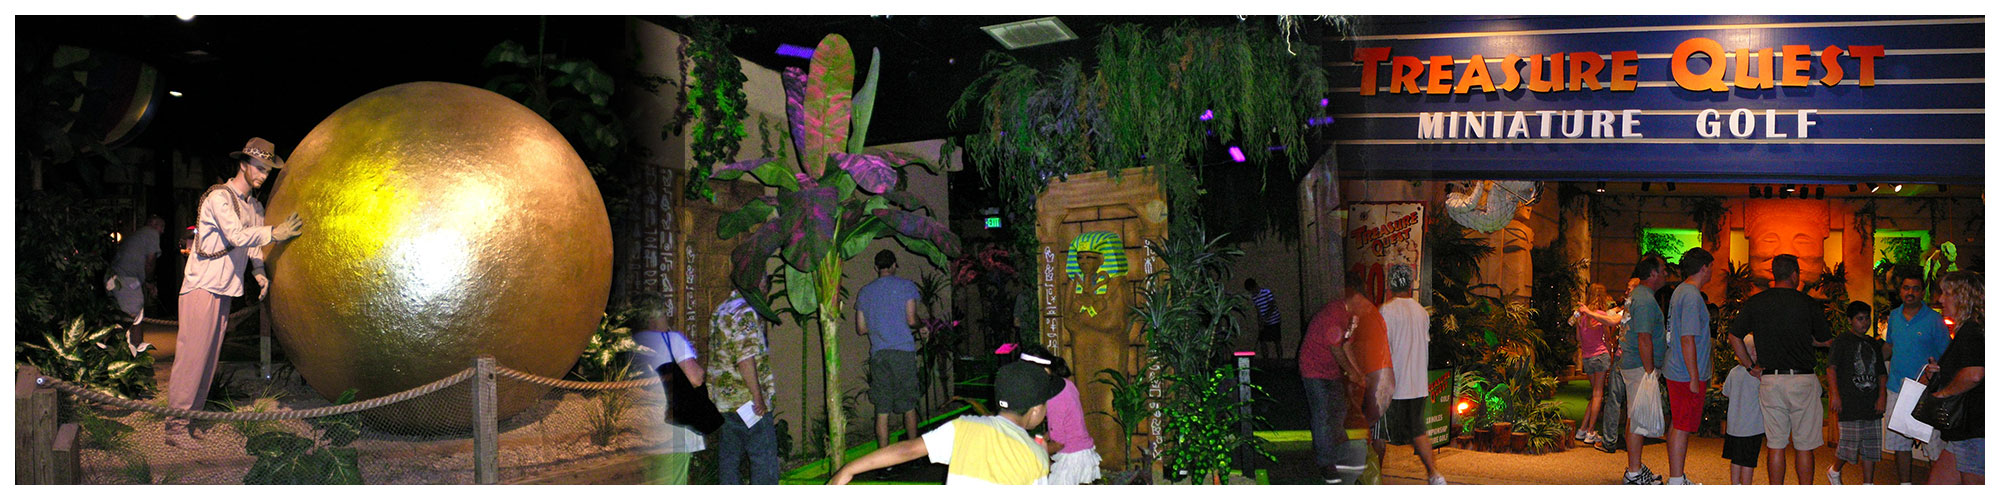 Treasure Quest Golf (Header Background) | Gatlinburg Attractions